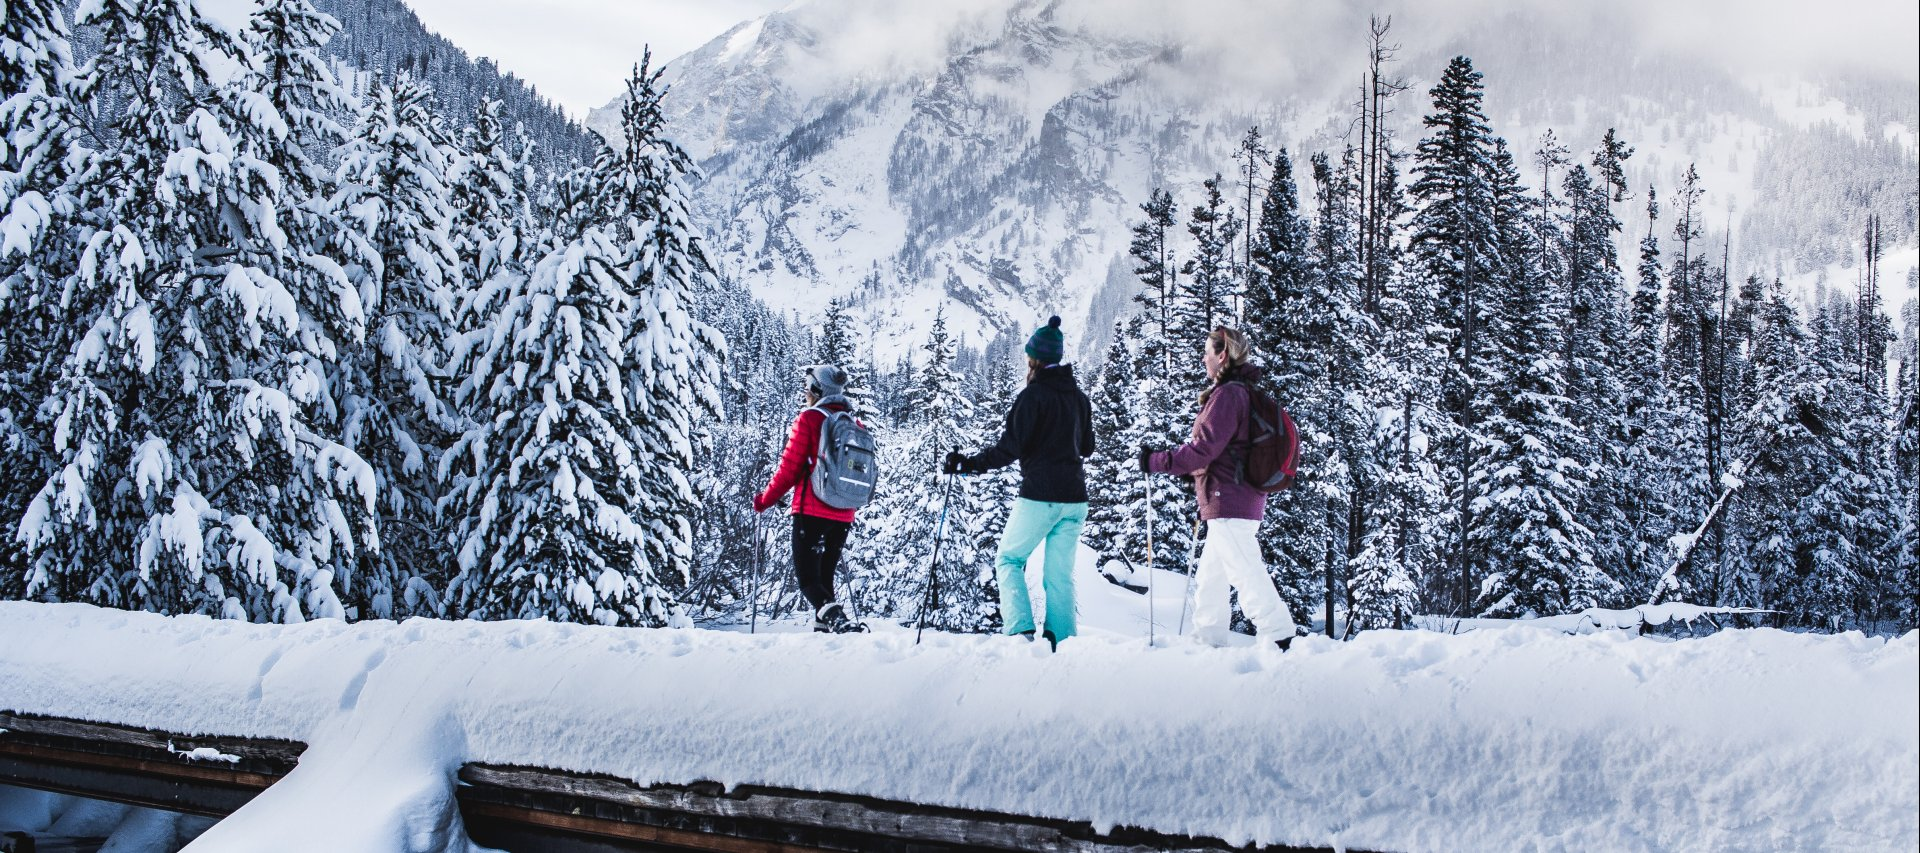 Explore the beautiful mountains by Snowshoeing and Cross-Country skiing in and out of dreamy winter wonderlands